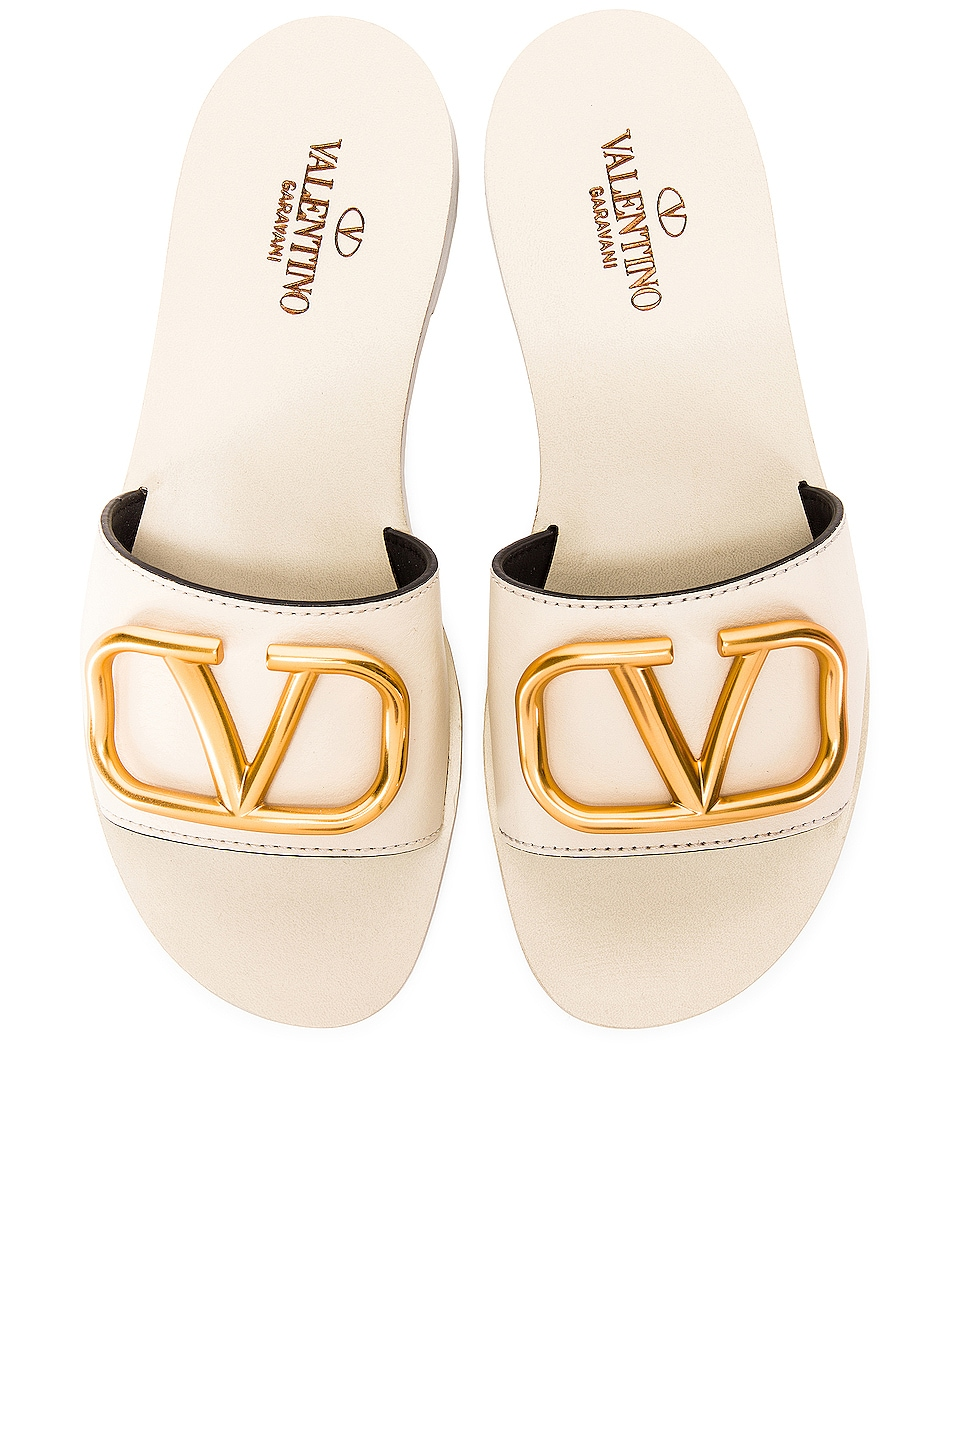 Image 1 of Valentino Garavani Vlogo Slides in Light Ivory